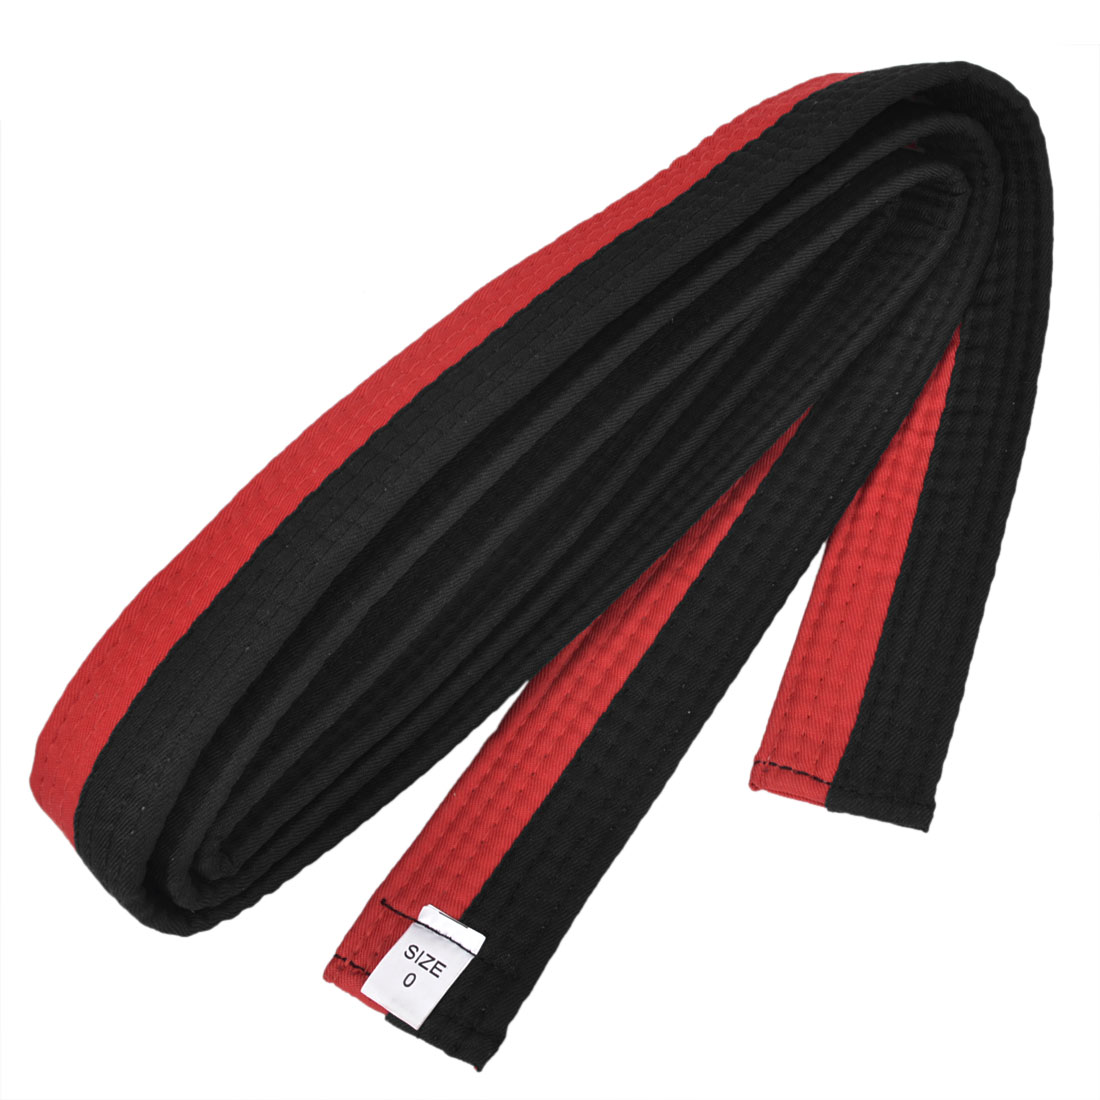 Red Black Level 1 Martial Arts Karate Tae Kwon Do Judo Belts 4cm Width